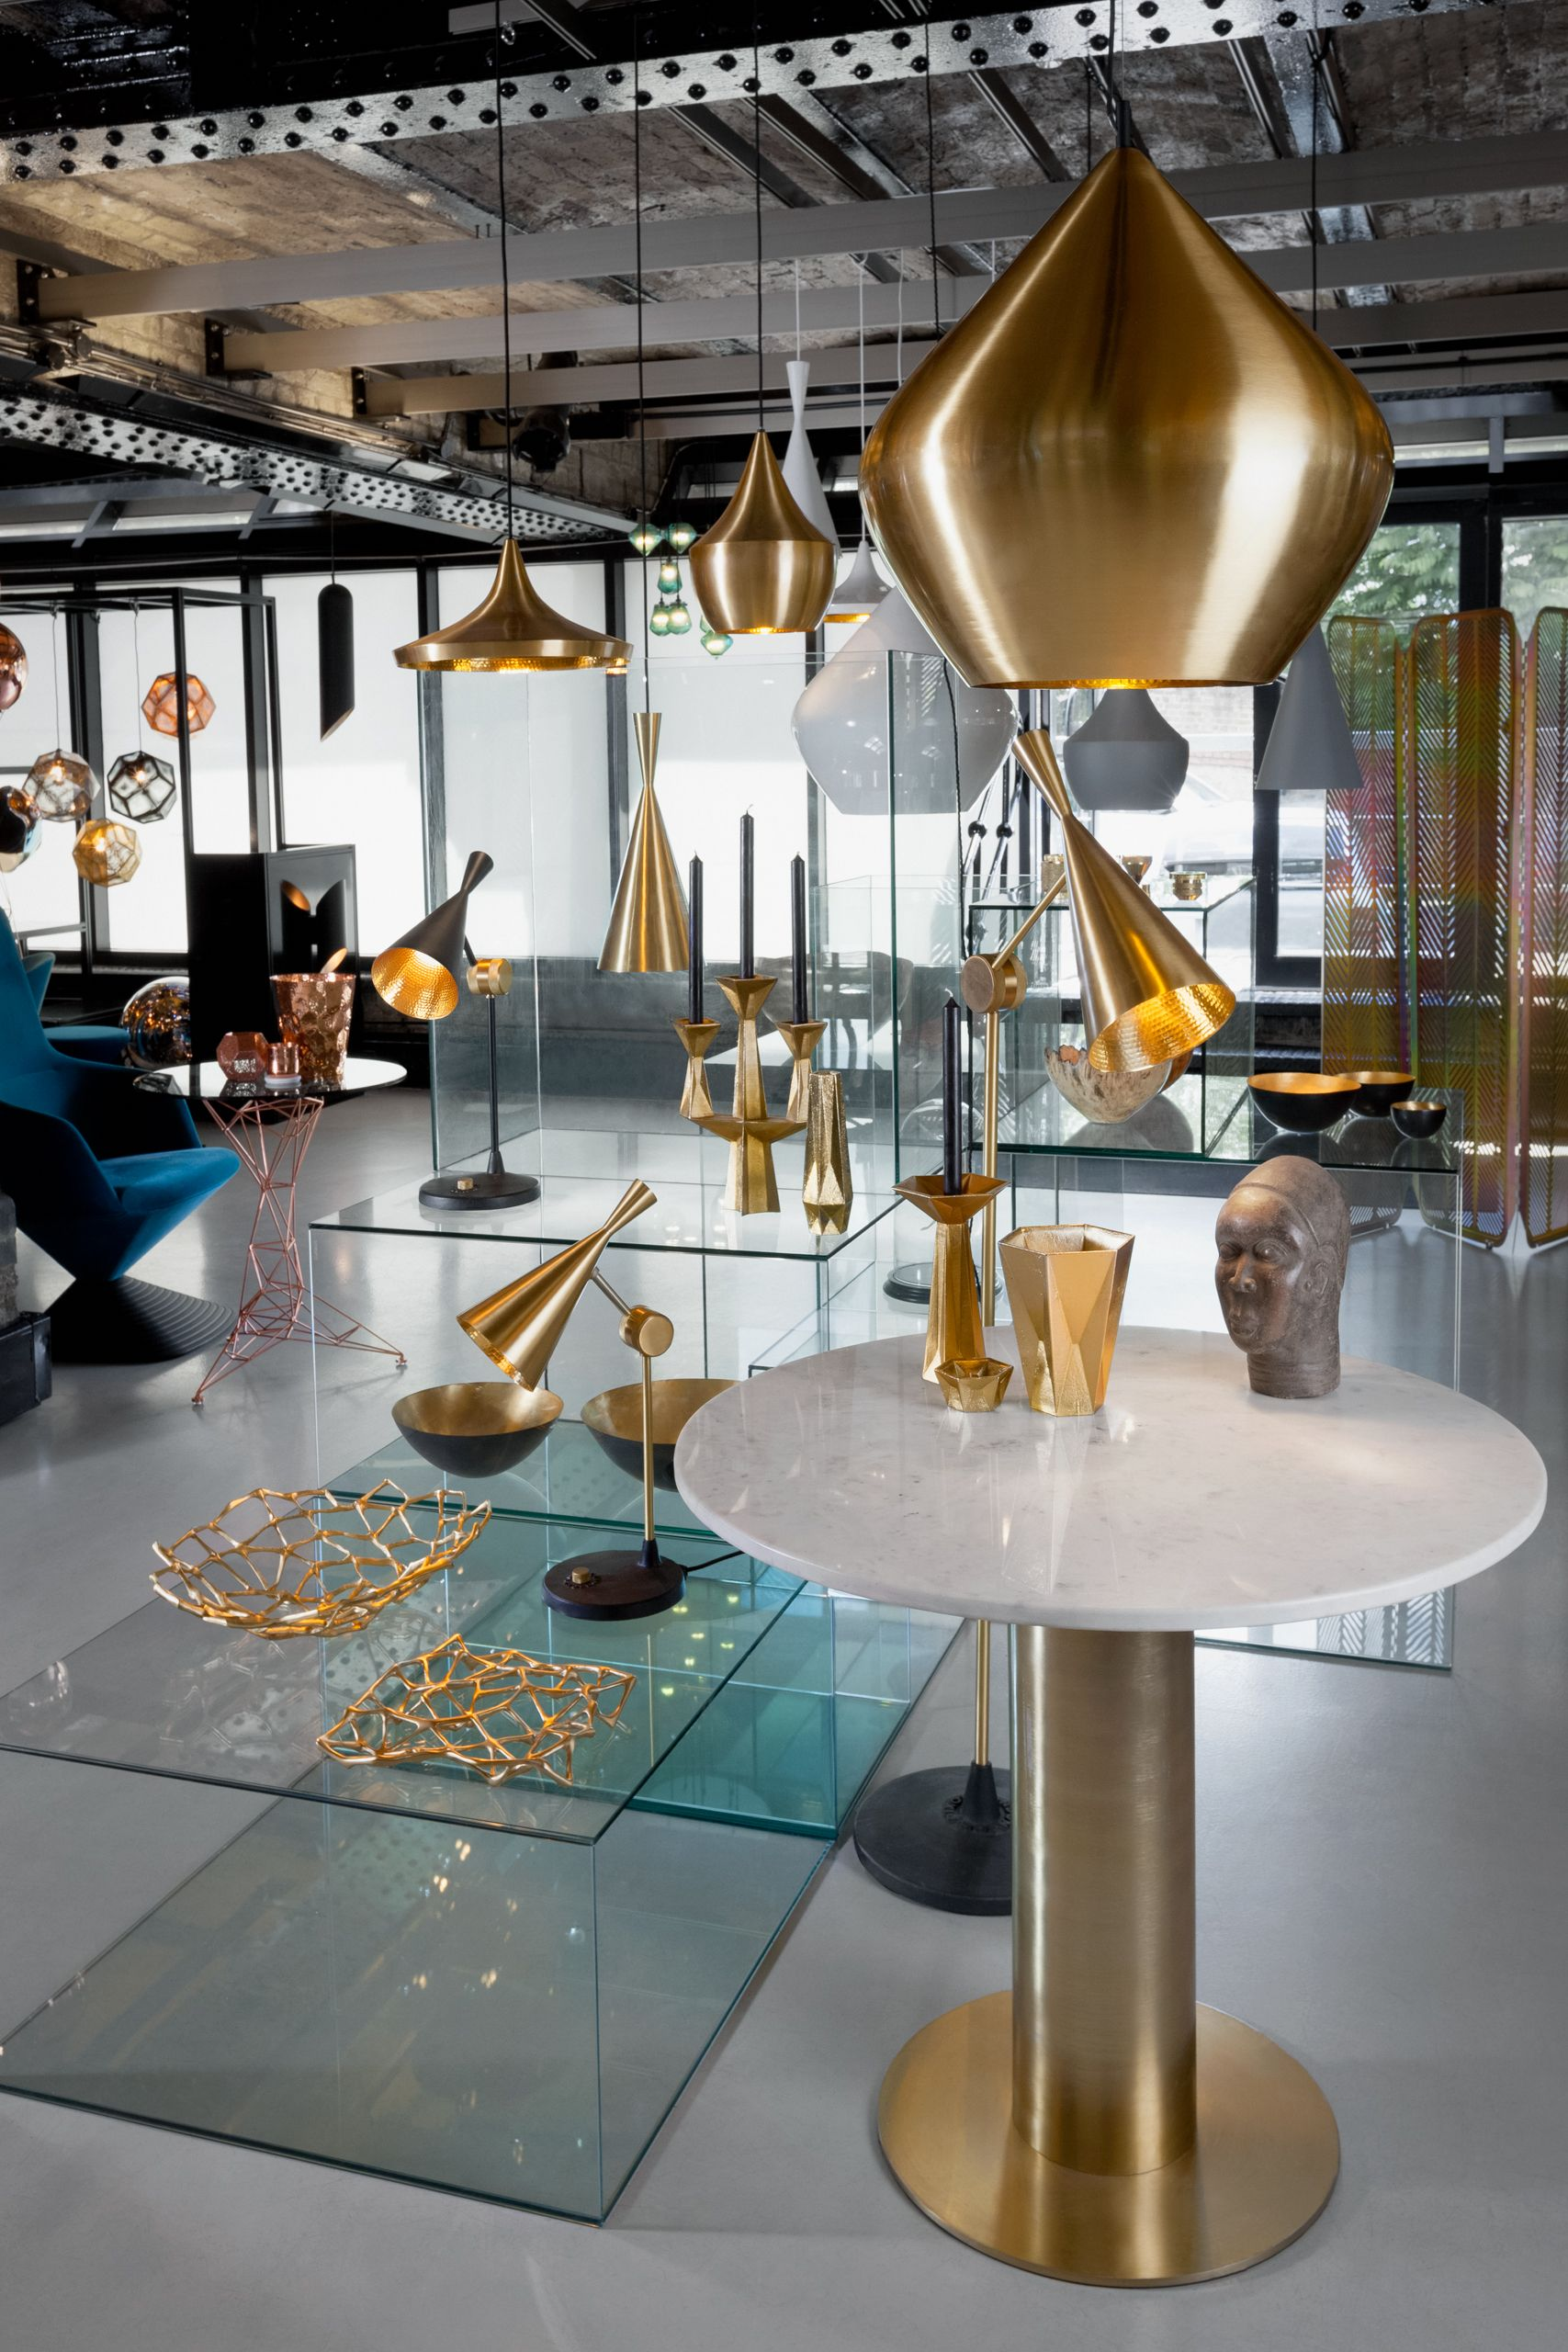 Beat Lights in Brass, Grey, White and Black. Tom Dixon